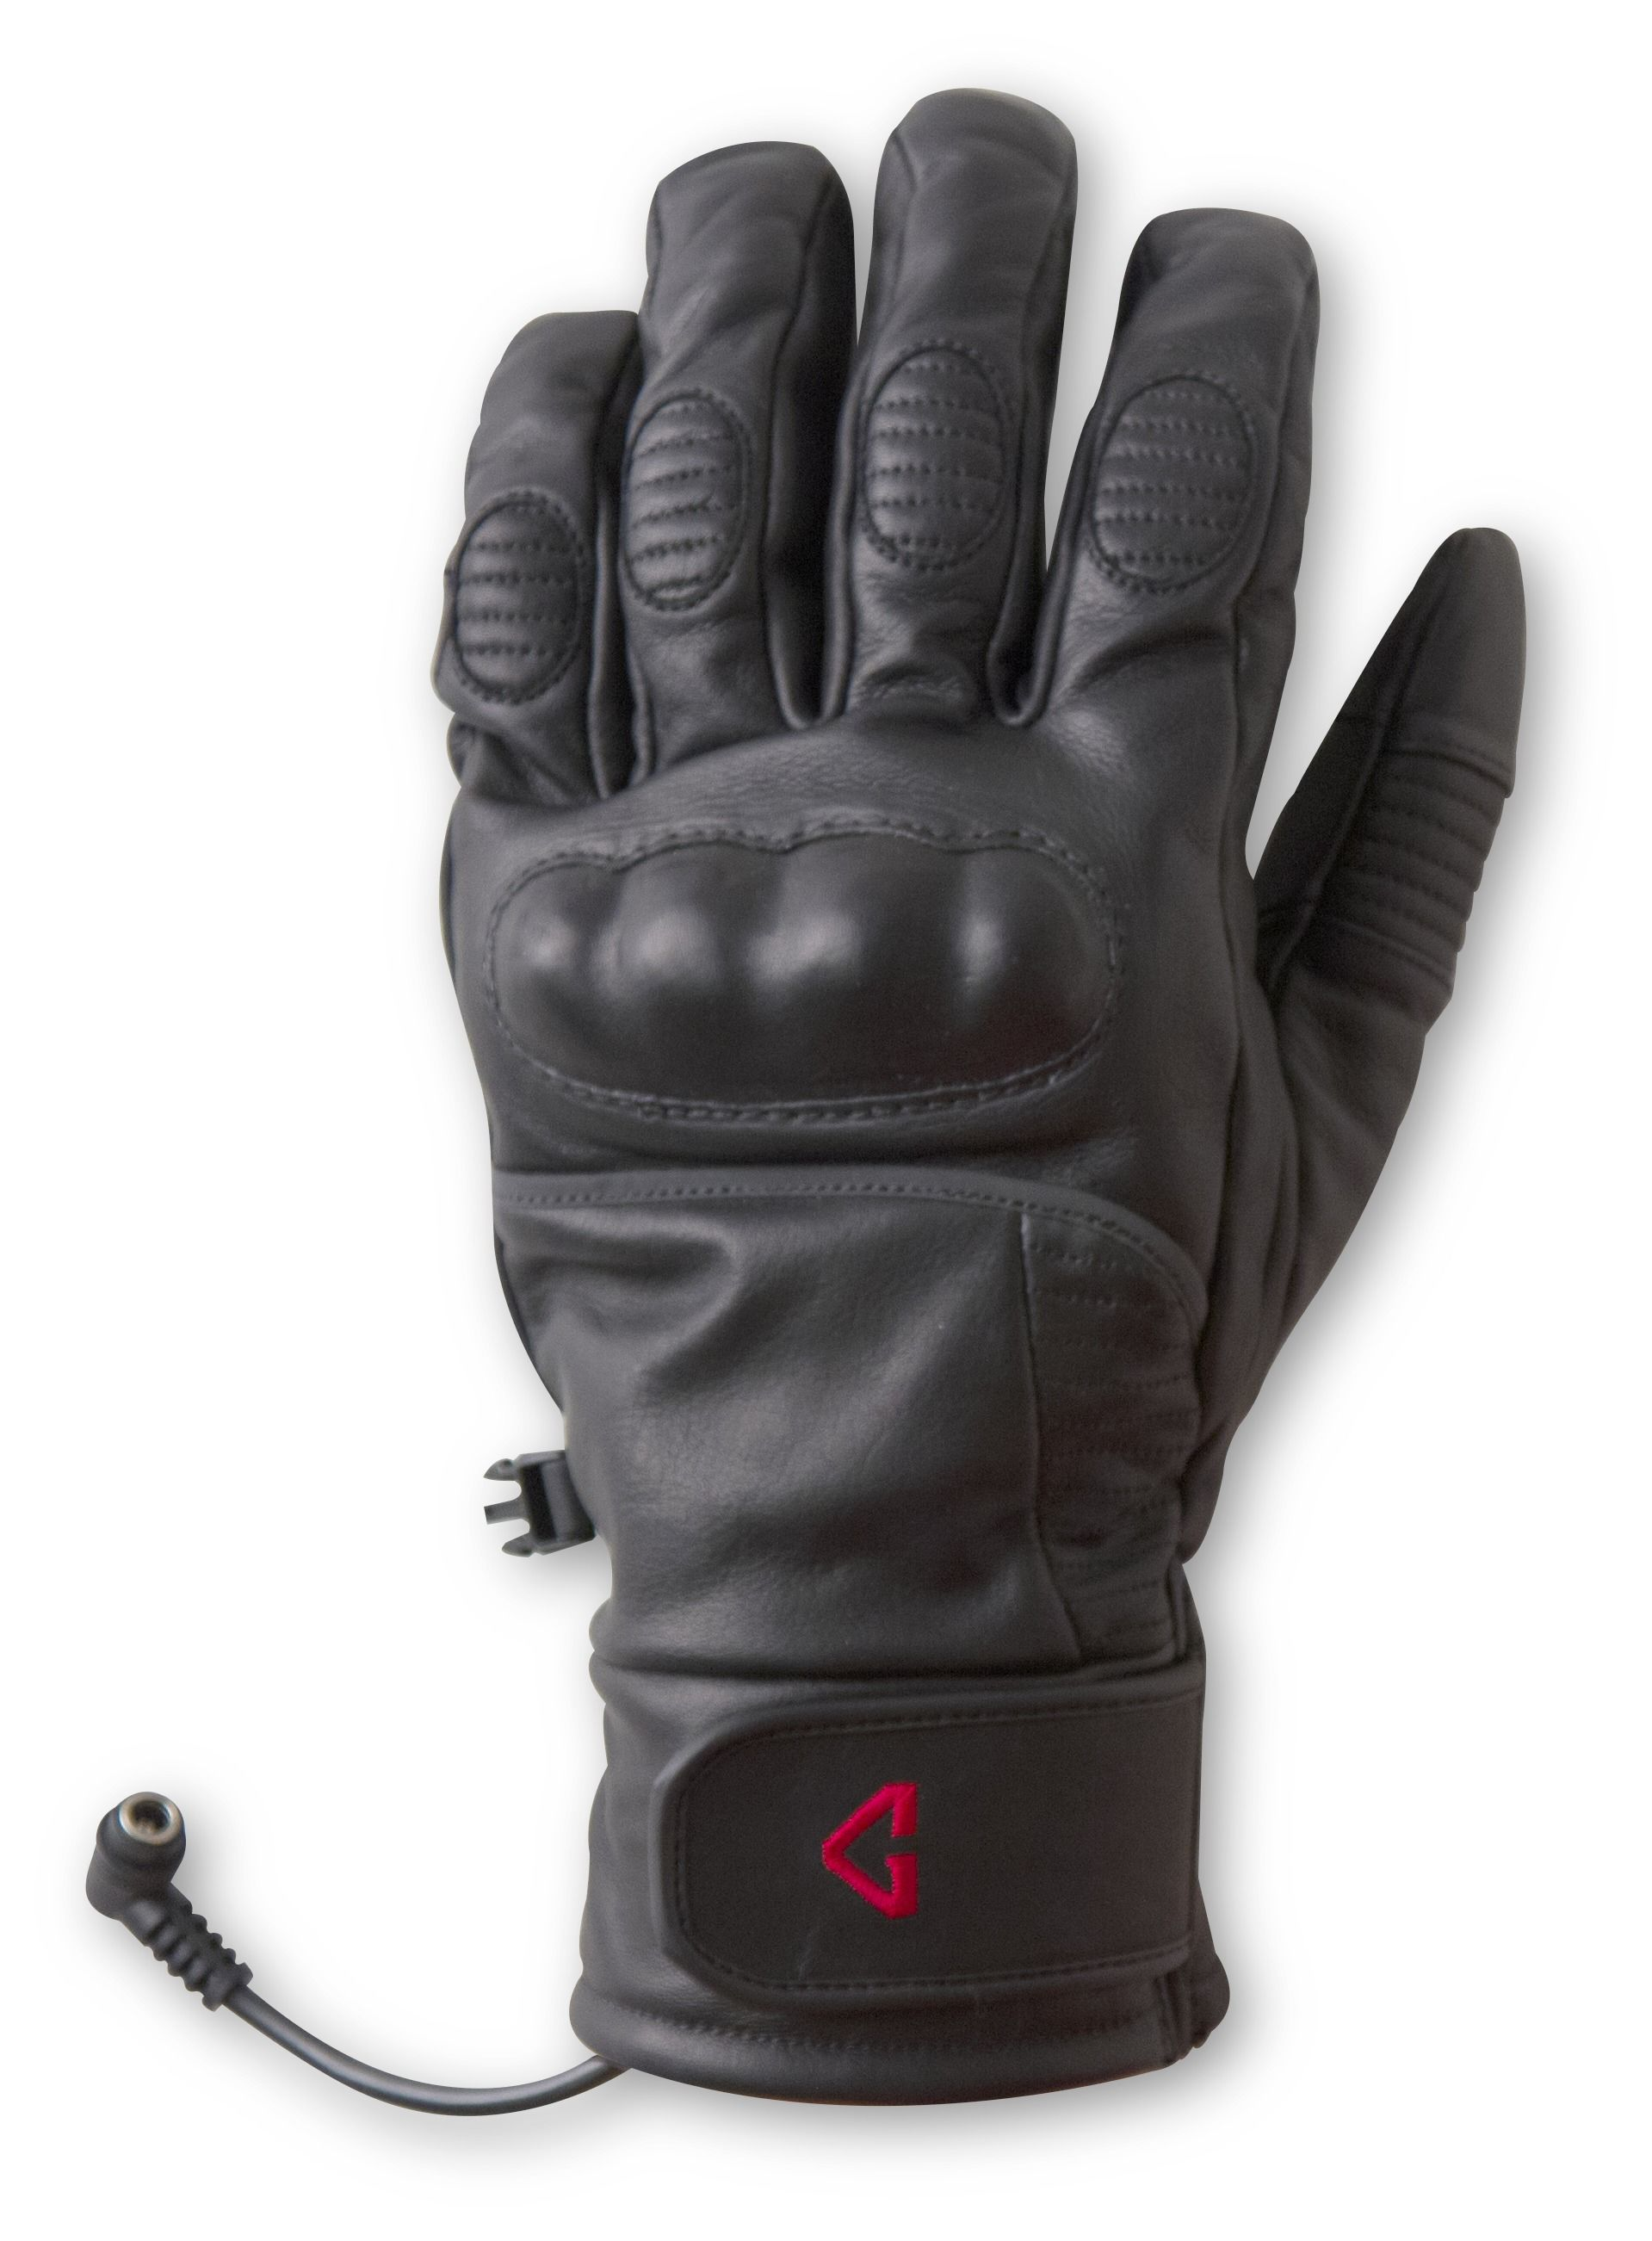 Heated motorcycle gloves vs heated grips - Heated Motorcycle Gloves Vs Heated Grips 44